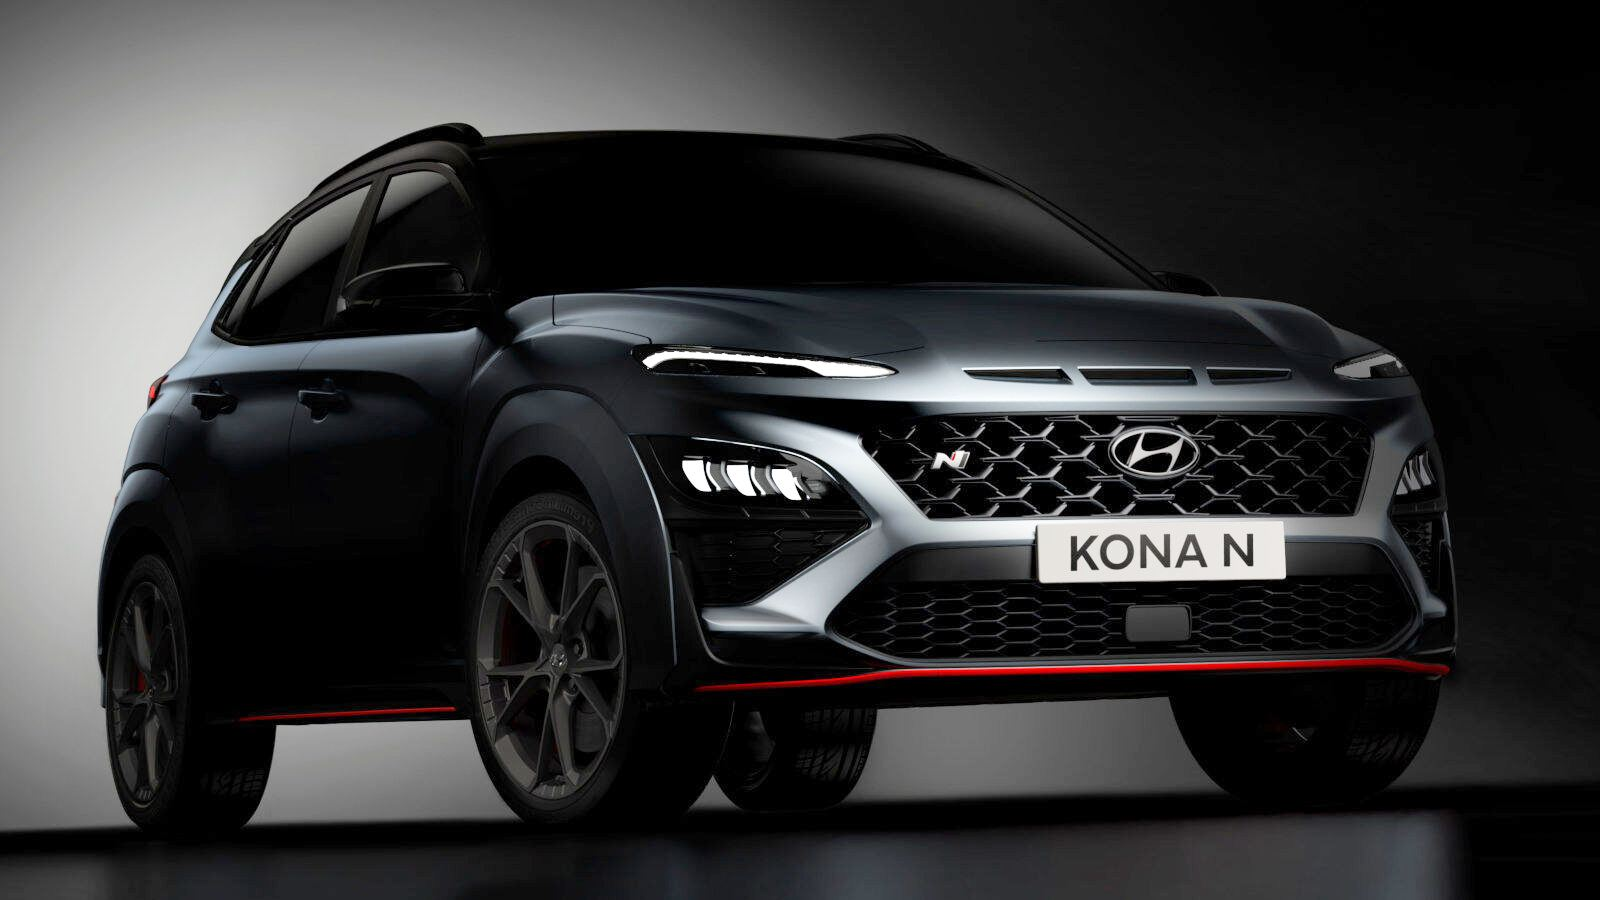 Hyundai Kona N to get 280 hp, 2.0-litre turbo-petrol with eight-speed DCT automatic